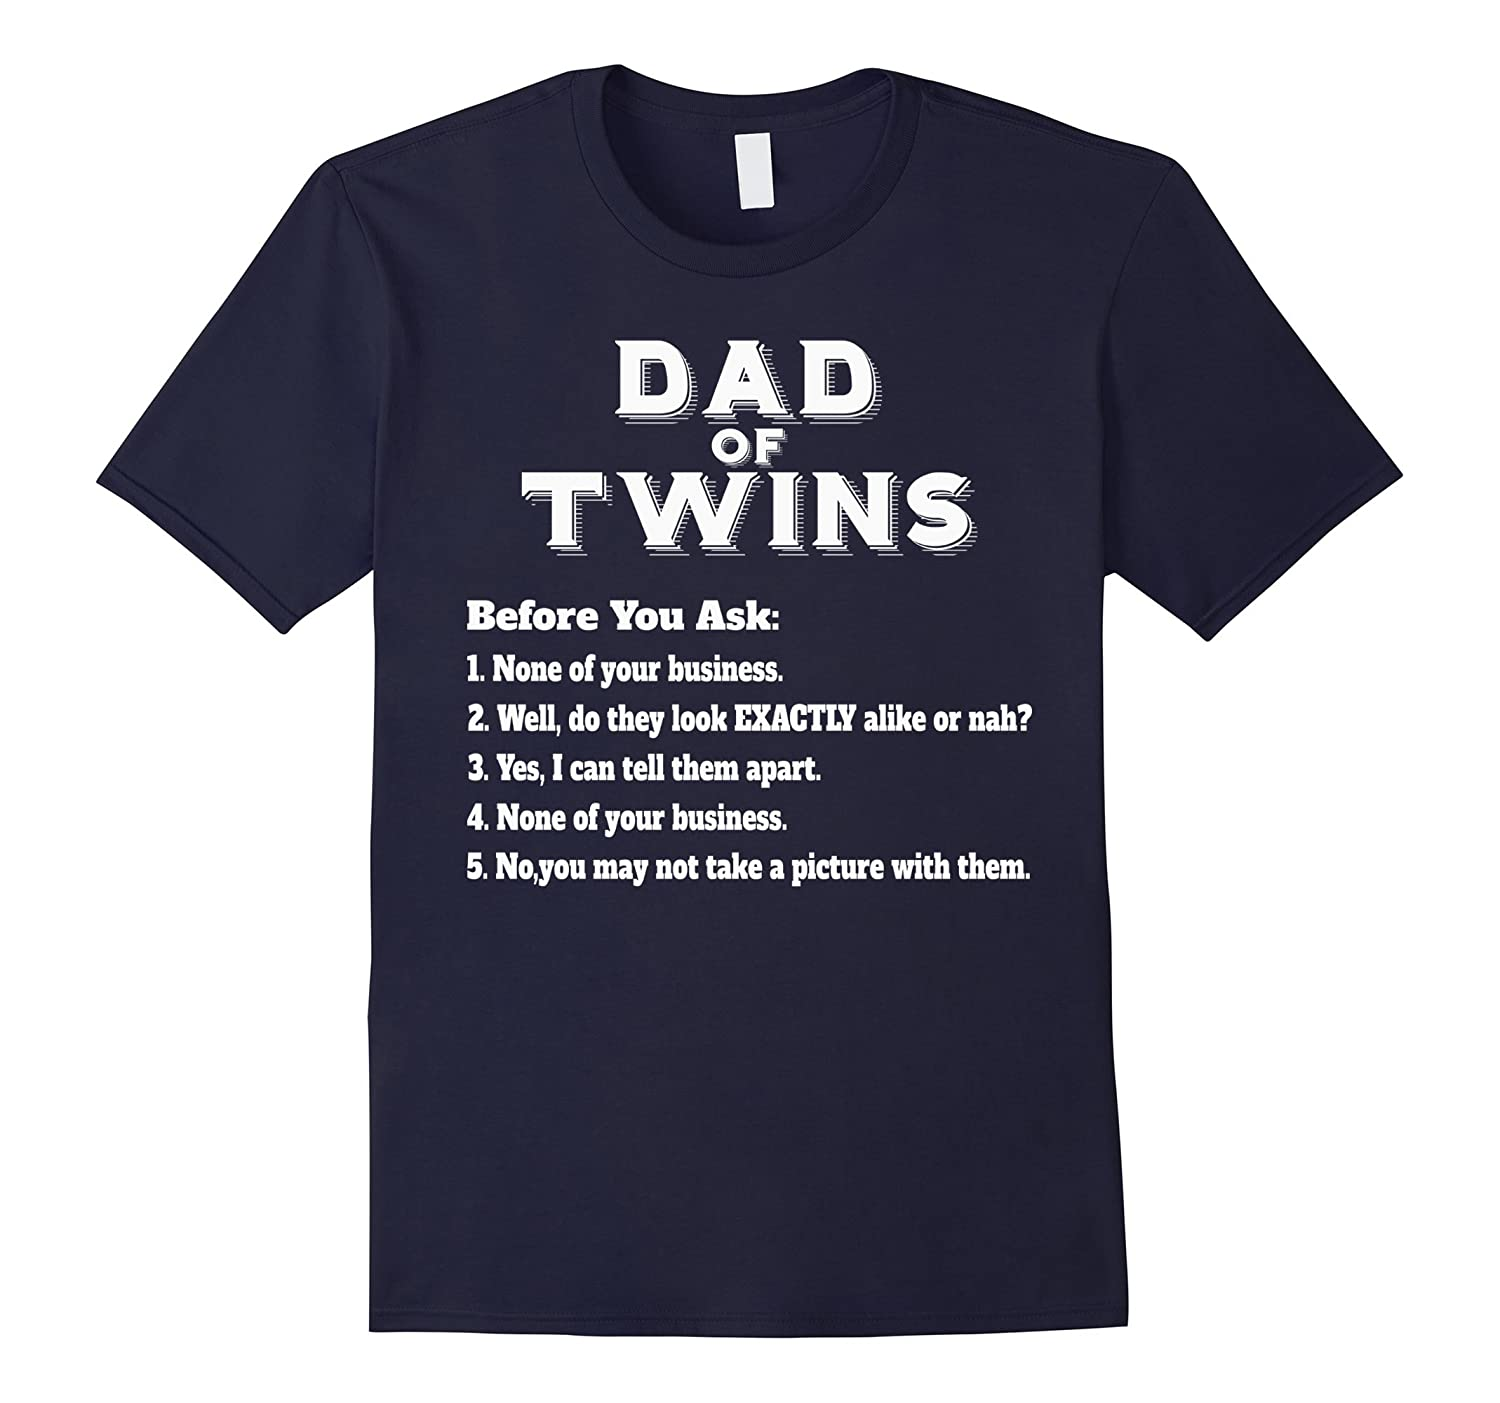 Mens Funny Twins Dad T-shirt for Fathers Day Common Questions